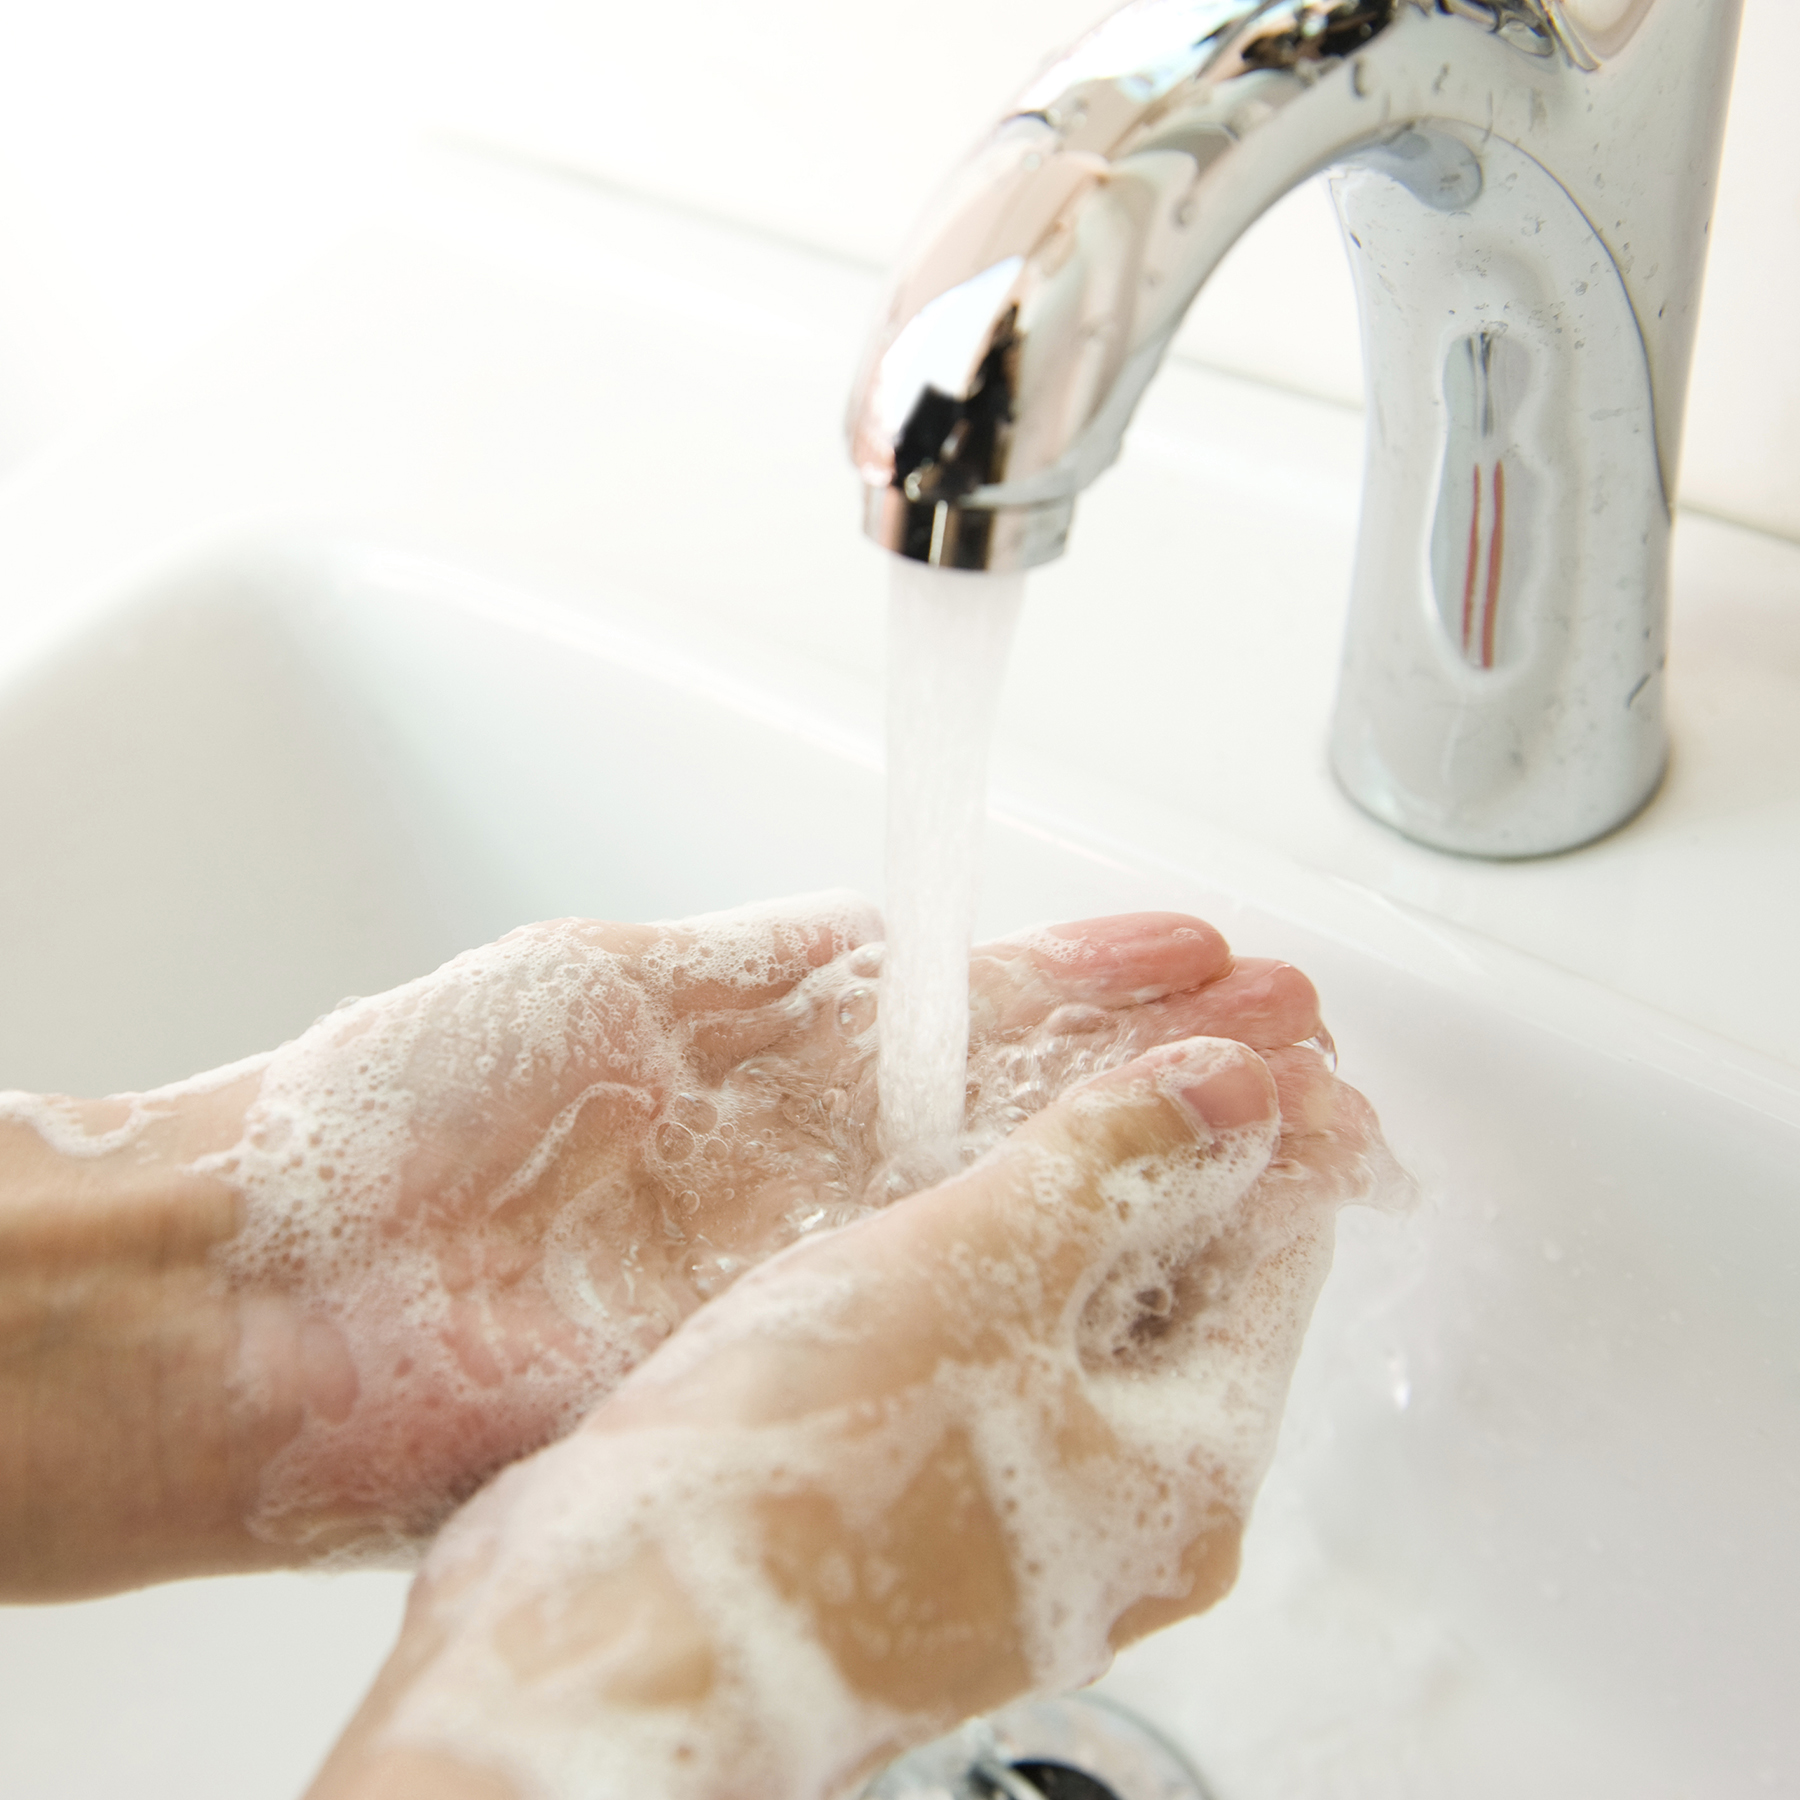 Use Of Hand Gels Washing Hands Soap Water